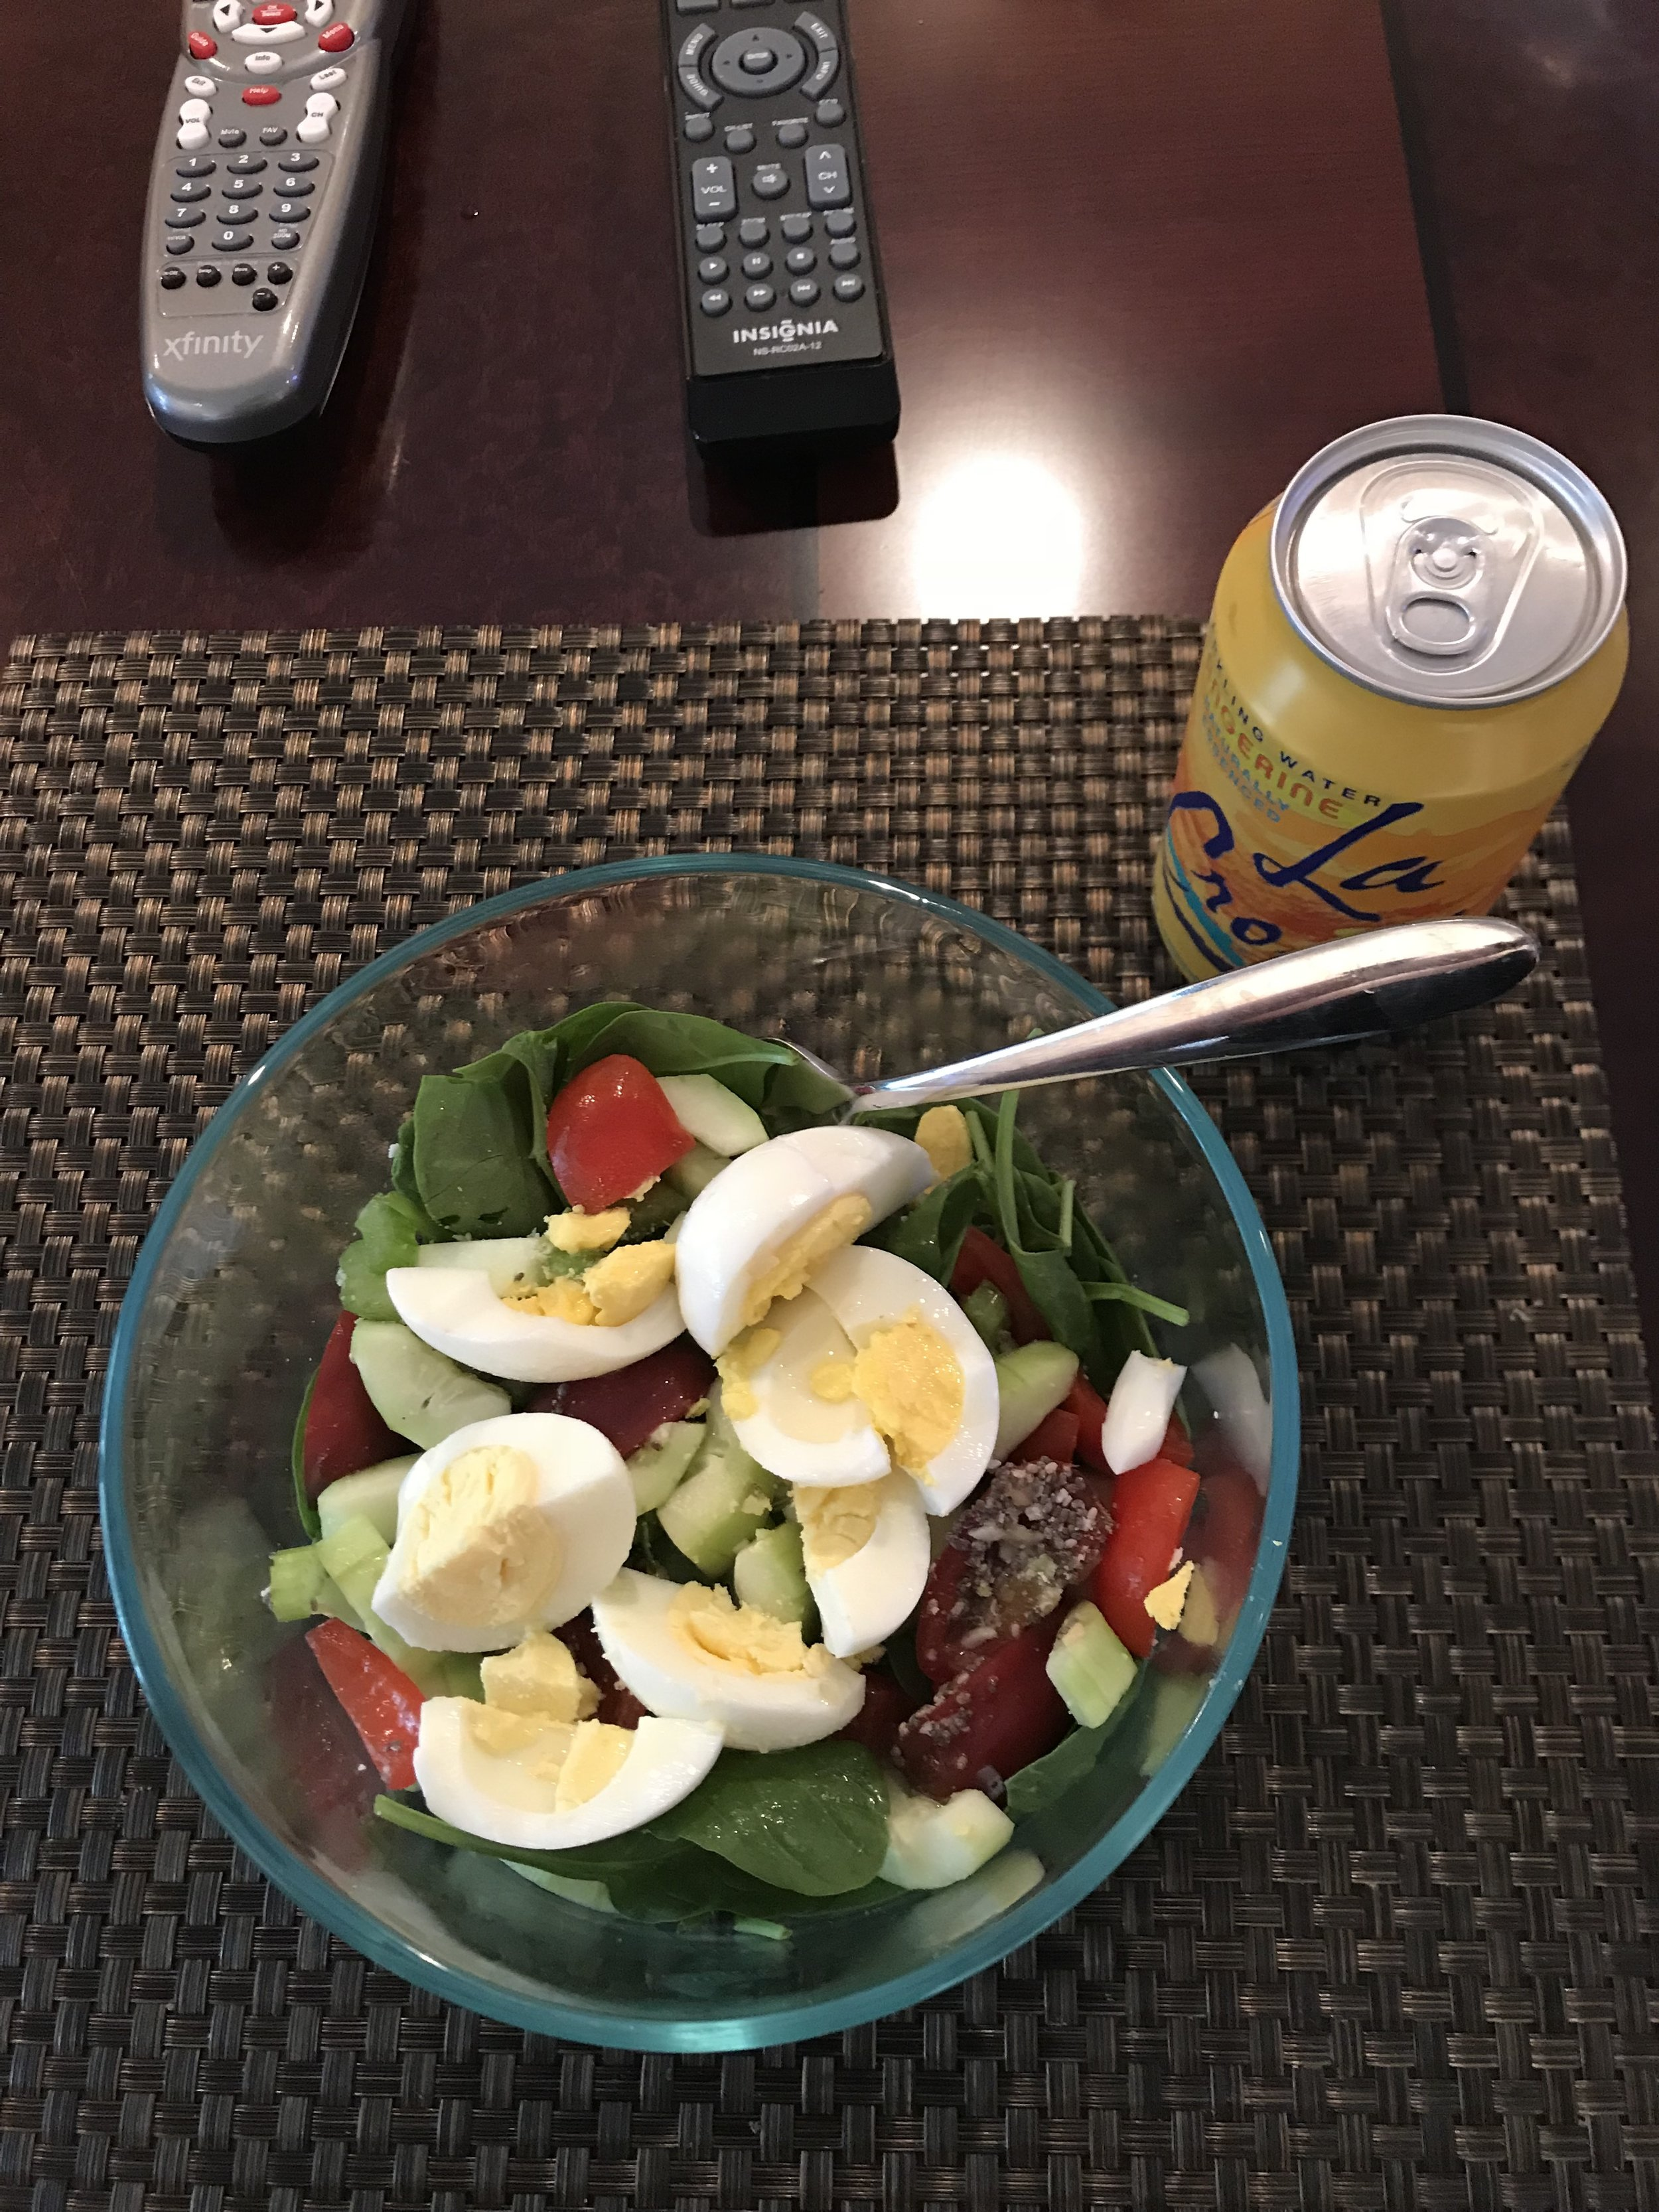 Lunch - Salad - spinach (1 green worth), cucumber, tomato and celery (combined 1 green), chia seed, sliced almonds and parmesan cheese (combined 1/2 blue), 2 hard boiled eggs (1 red), and vinagrette dressing (1 orange).